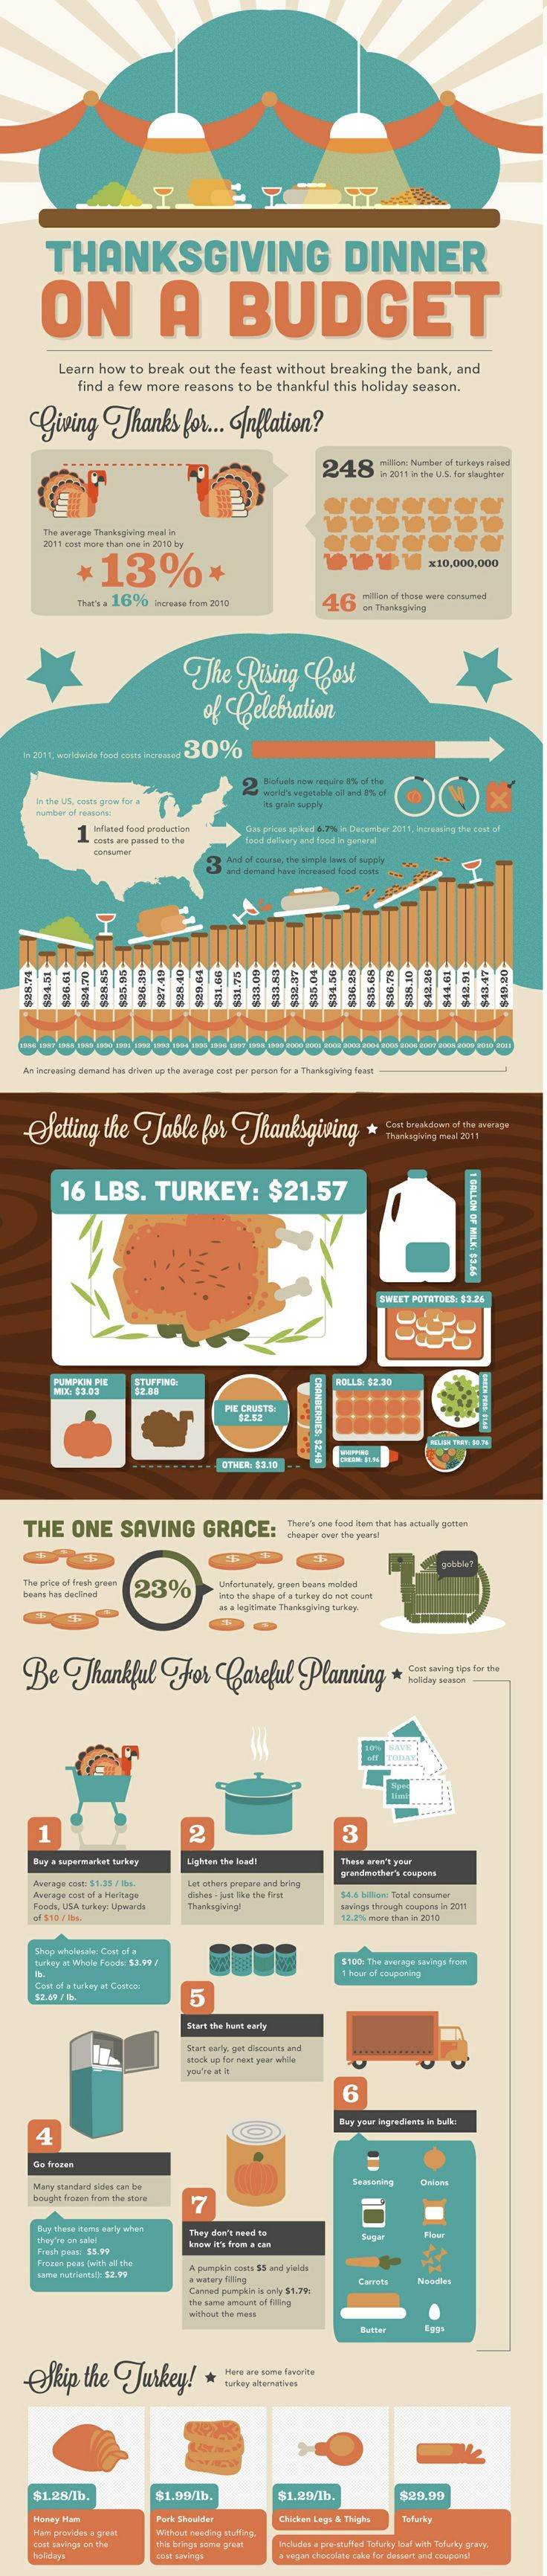 Budgeting Your Thanksgiving Dinner